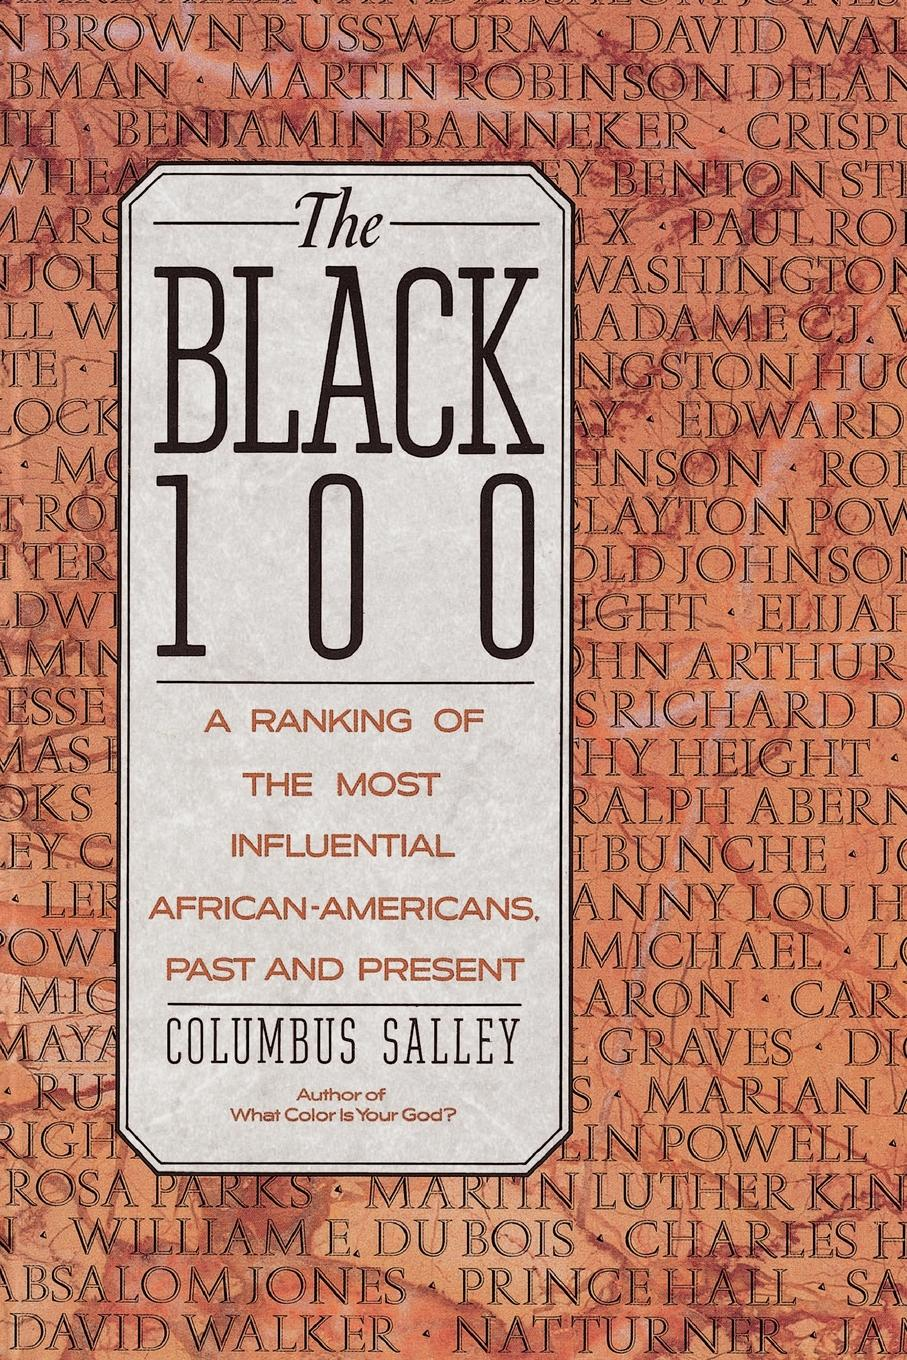 Columbus Salley, Colombus Salley The Black 100 in search of our roots how l9 extraordinary african americans reclaimed their past